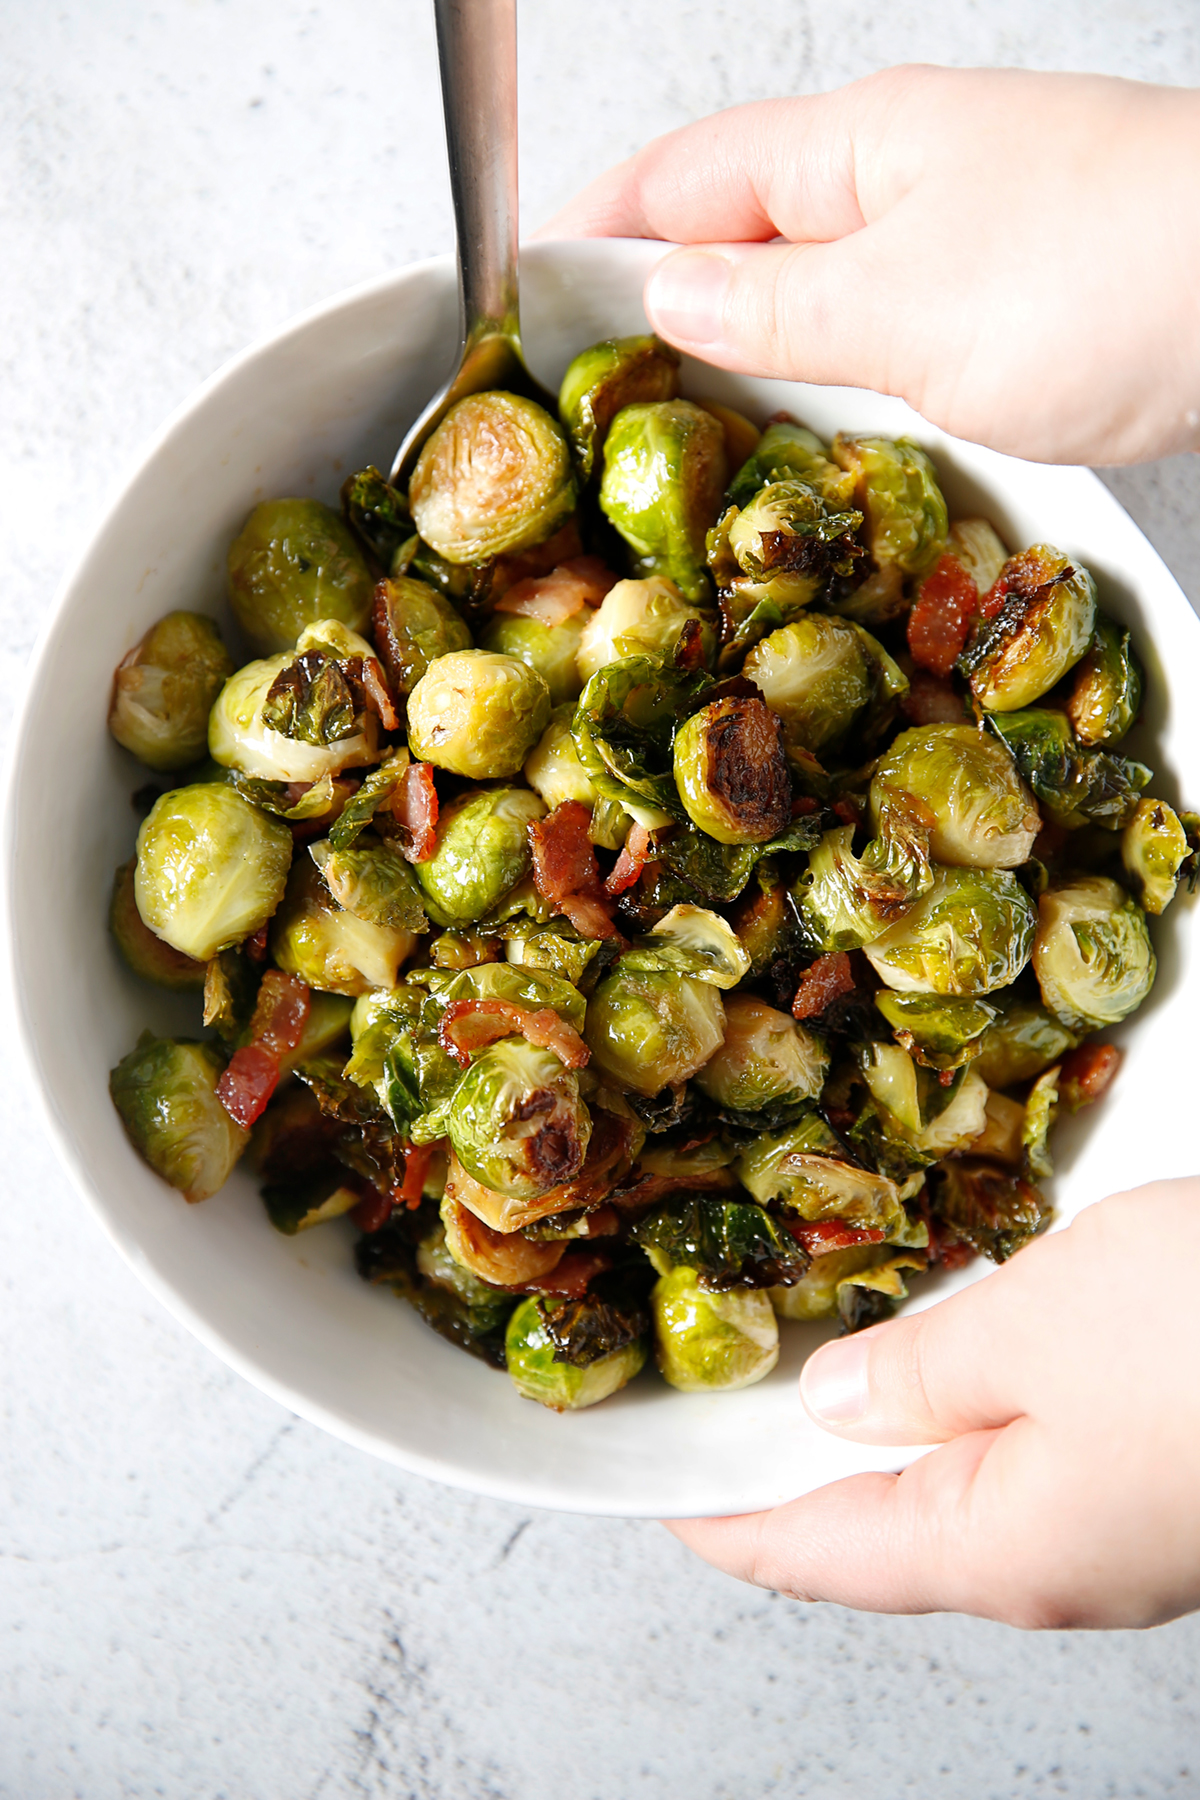 Roasted brussel sprouts with bacon in a bowl